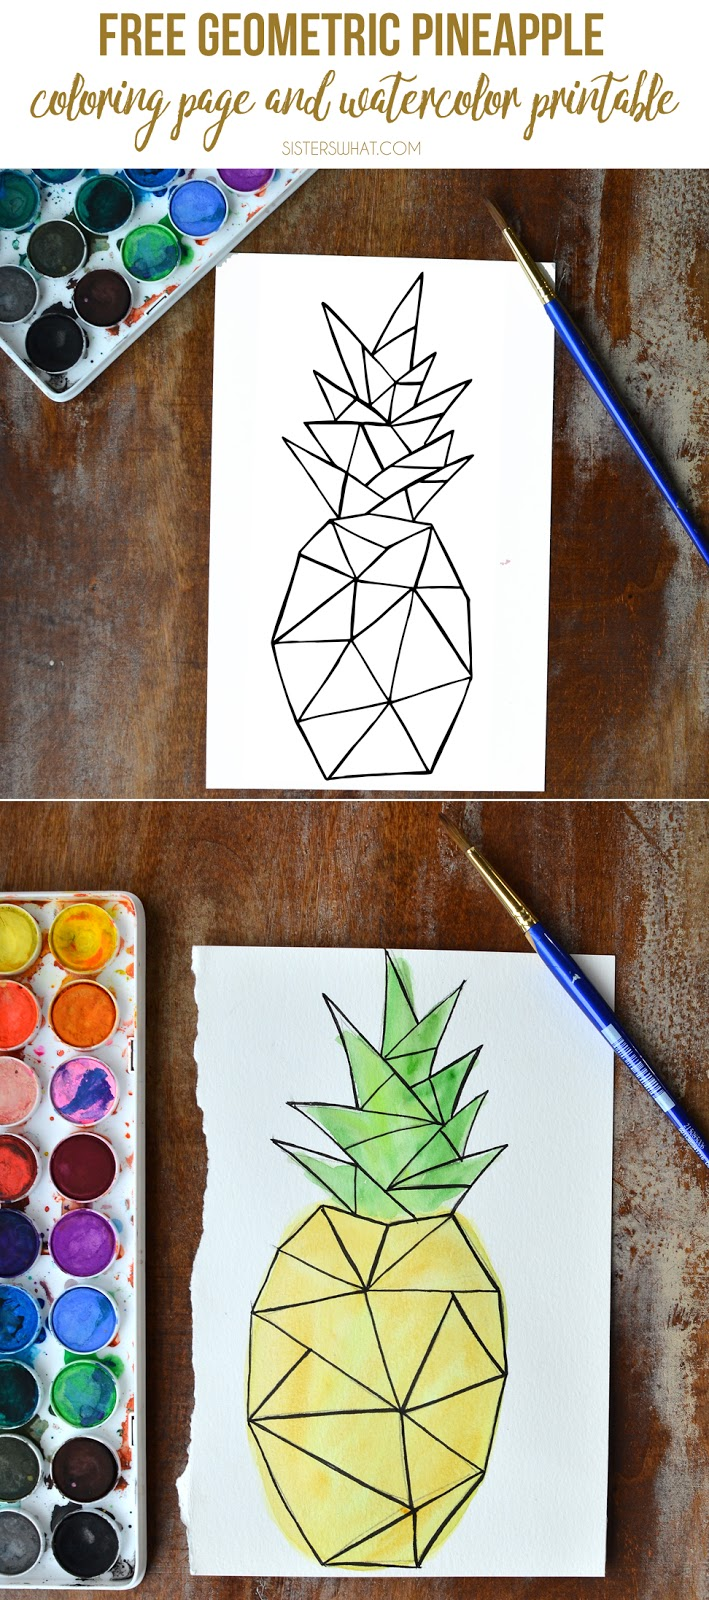 Free geometric pineapple coloring page and watercolor card print